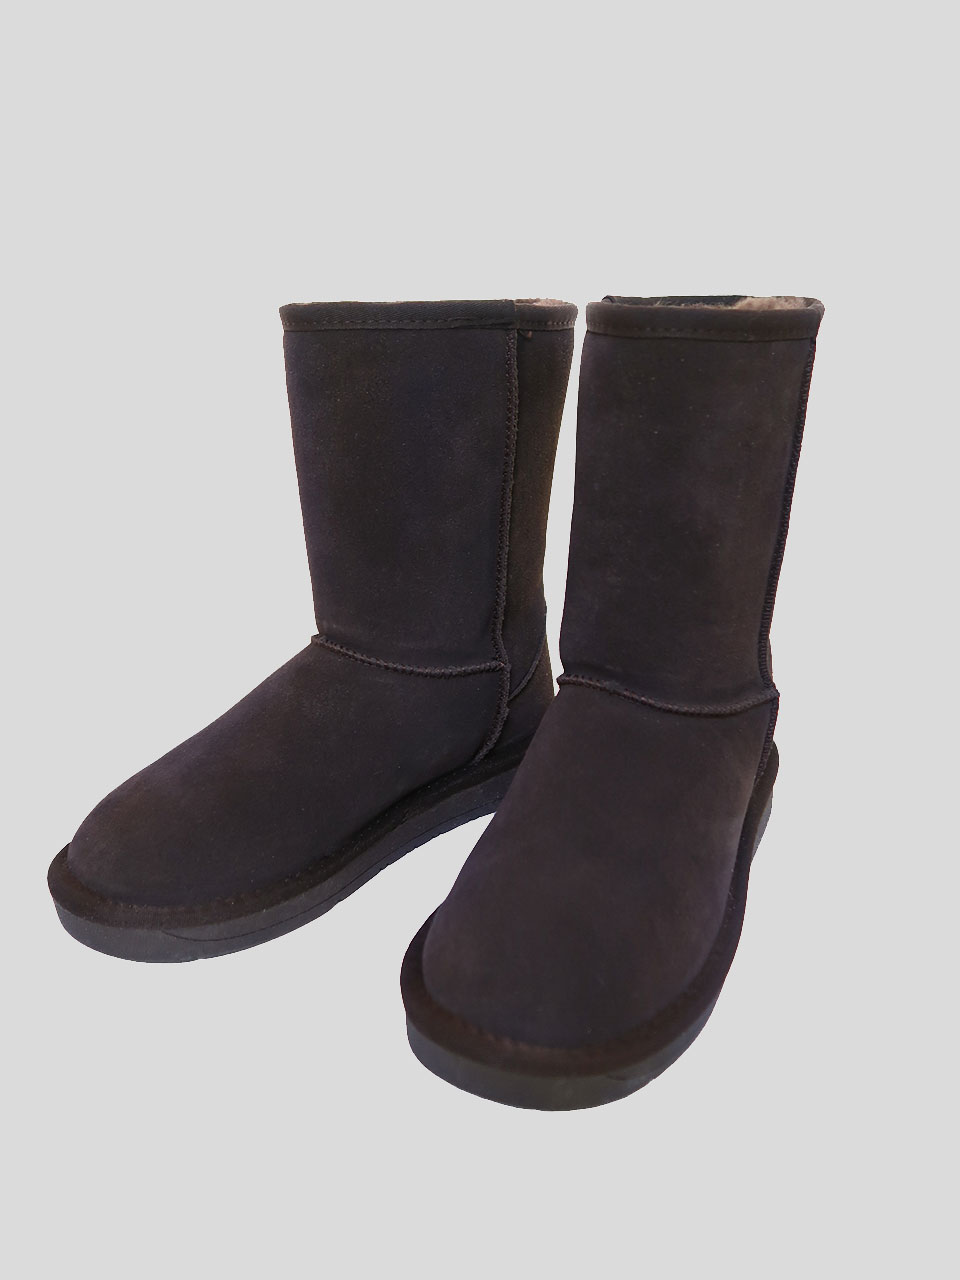 middle ugg boots/기간 여유있게 주문해주세요:)